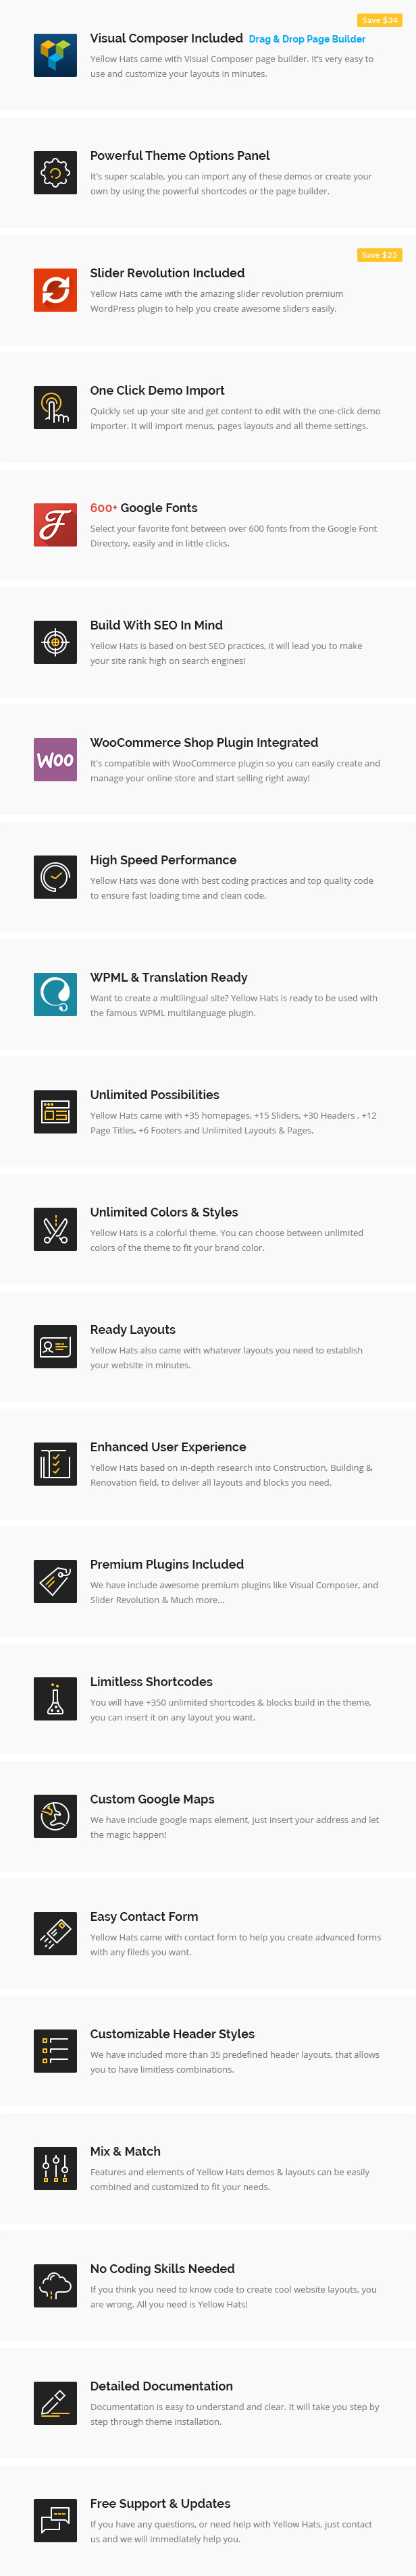 Construction, Building, Renovation & Handyman WordPress Theme